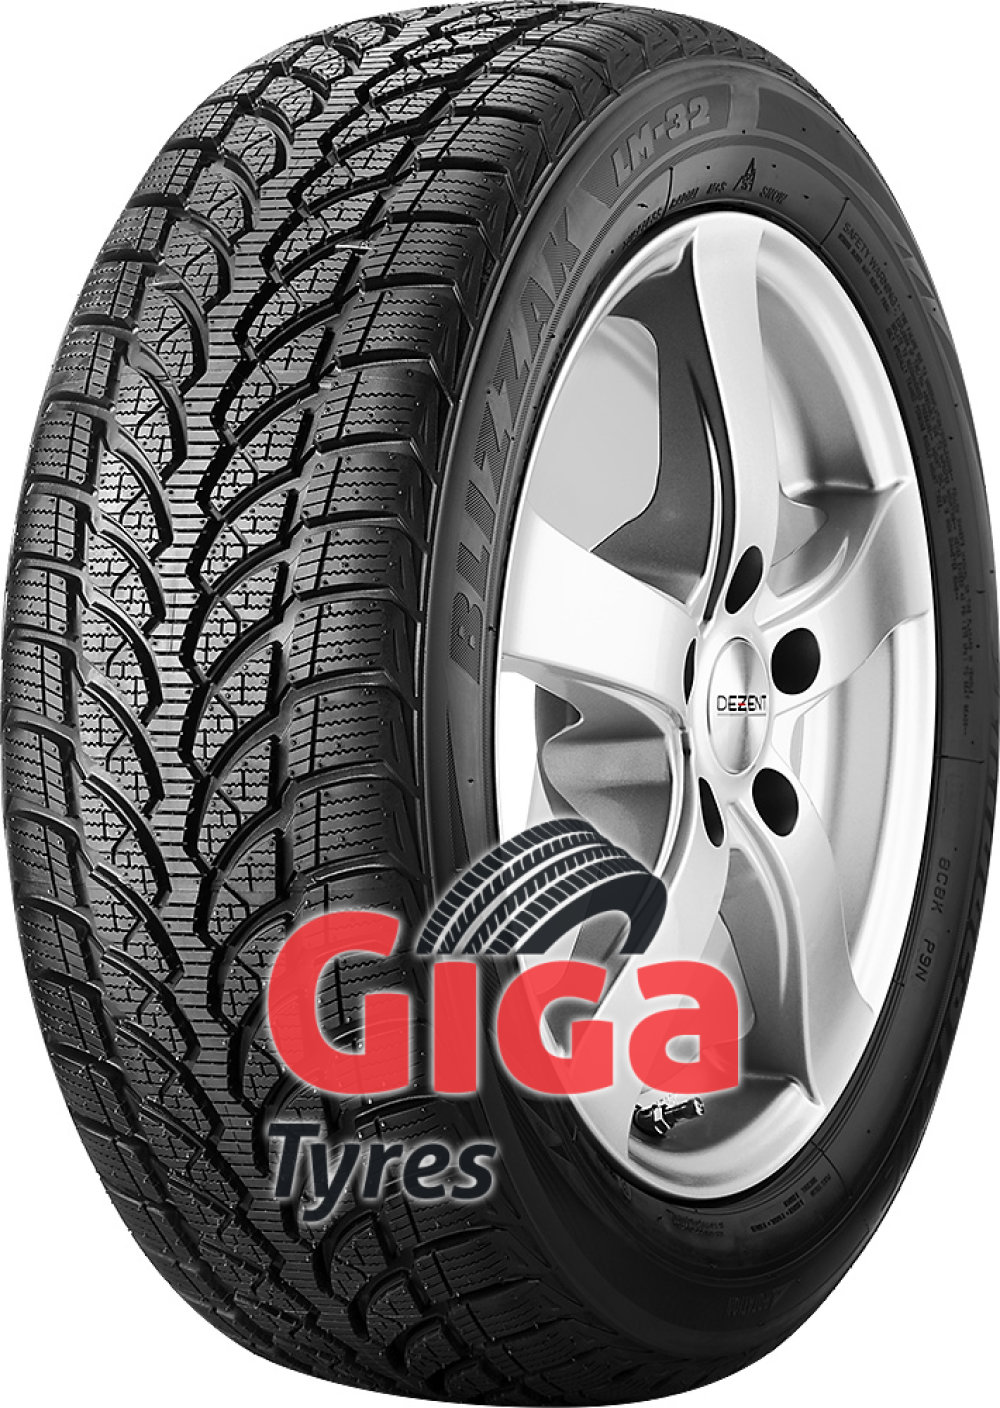 Bridgestone Blizzak LM-32 ( 225/60 R16 98H AO, with rim protection (MFS) )